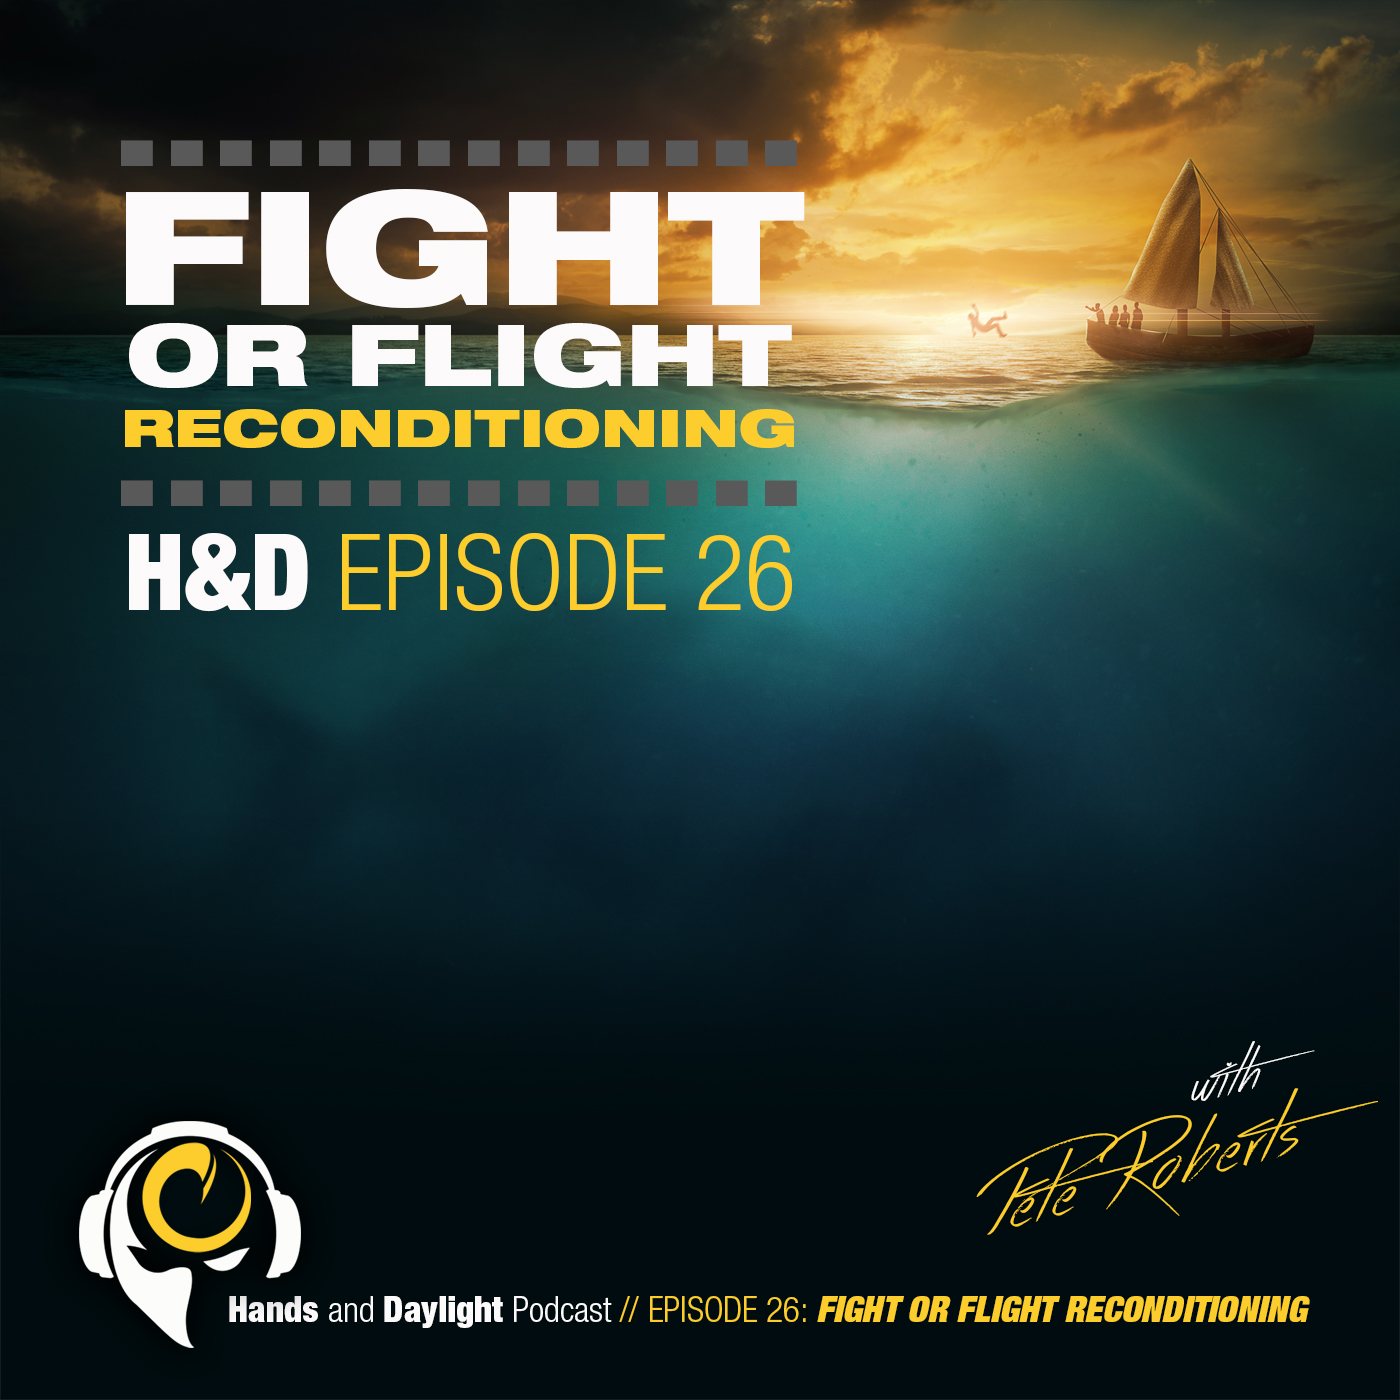 E26: FIGHT OR FLIGHT RECONDITIONING